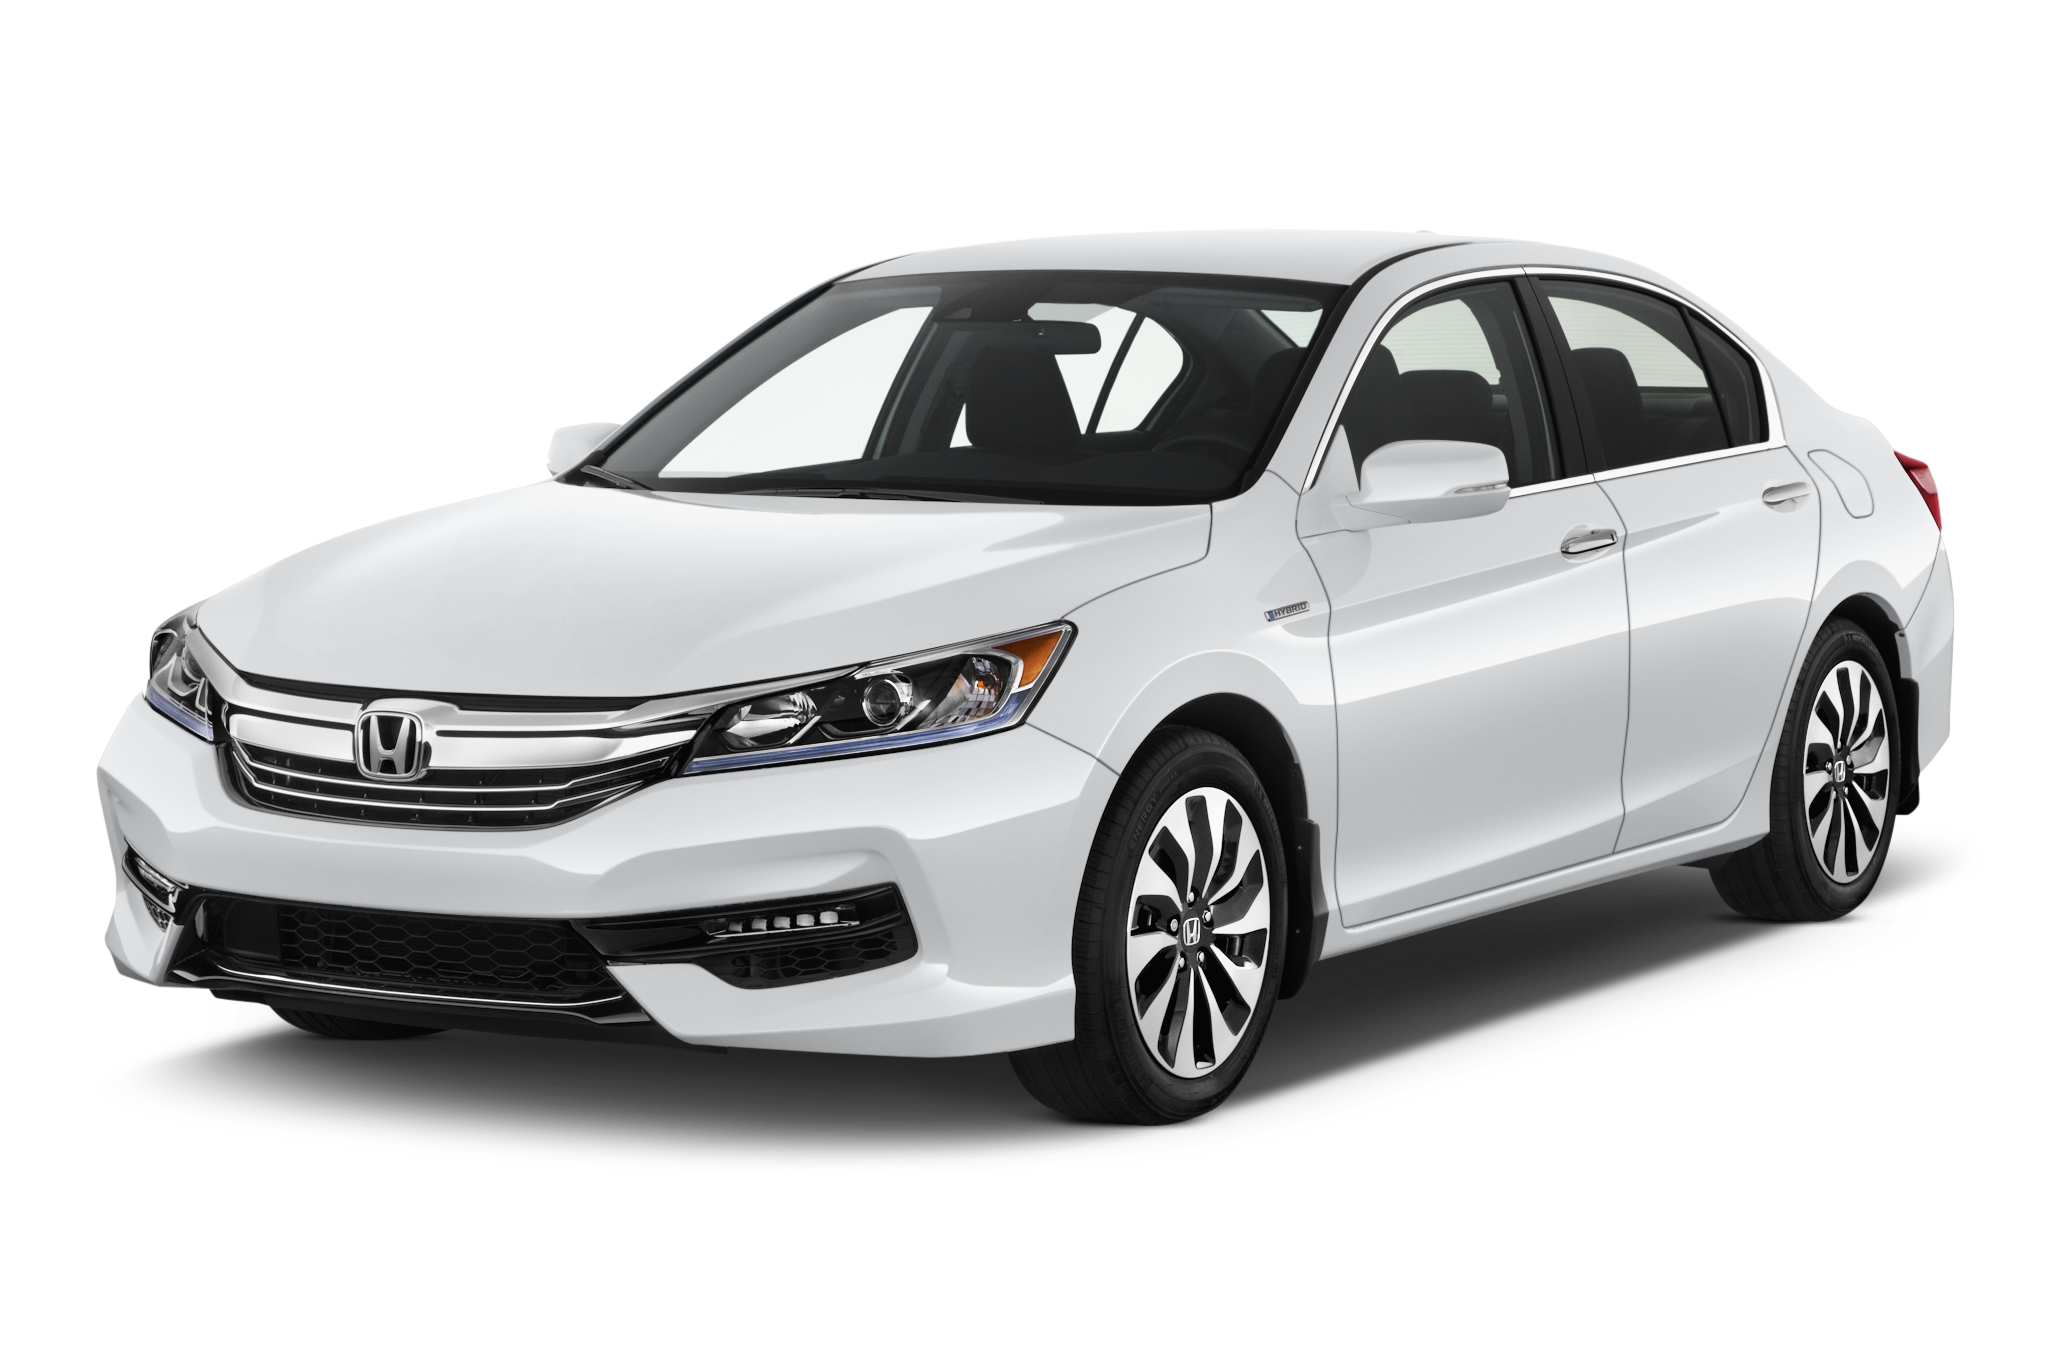 2017 honda accord hybrid gets more power improved efficiency automobile magazine. Black Bedroom Furniture Sets. Home Design Ideas